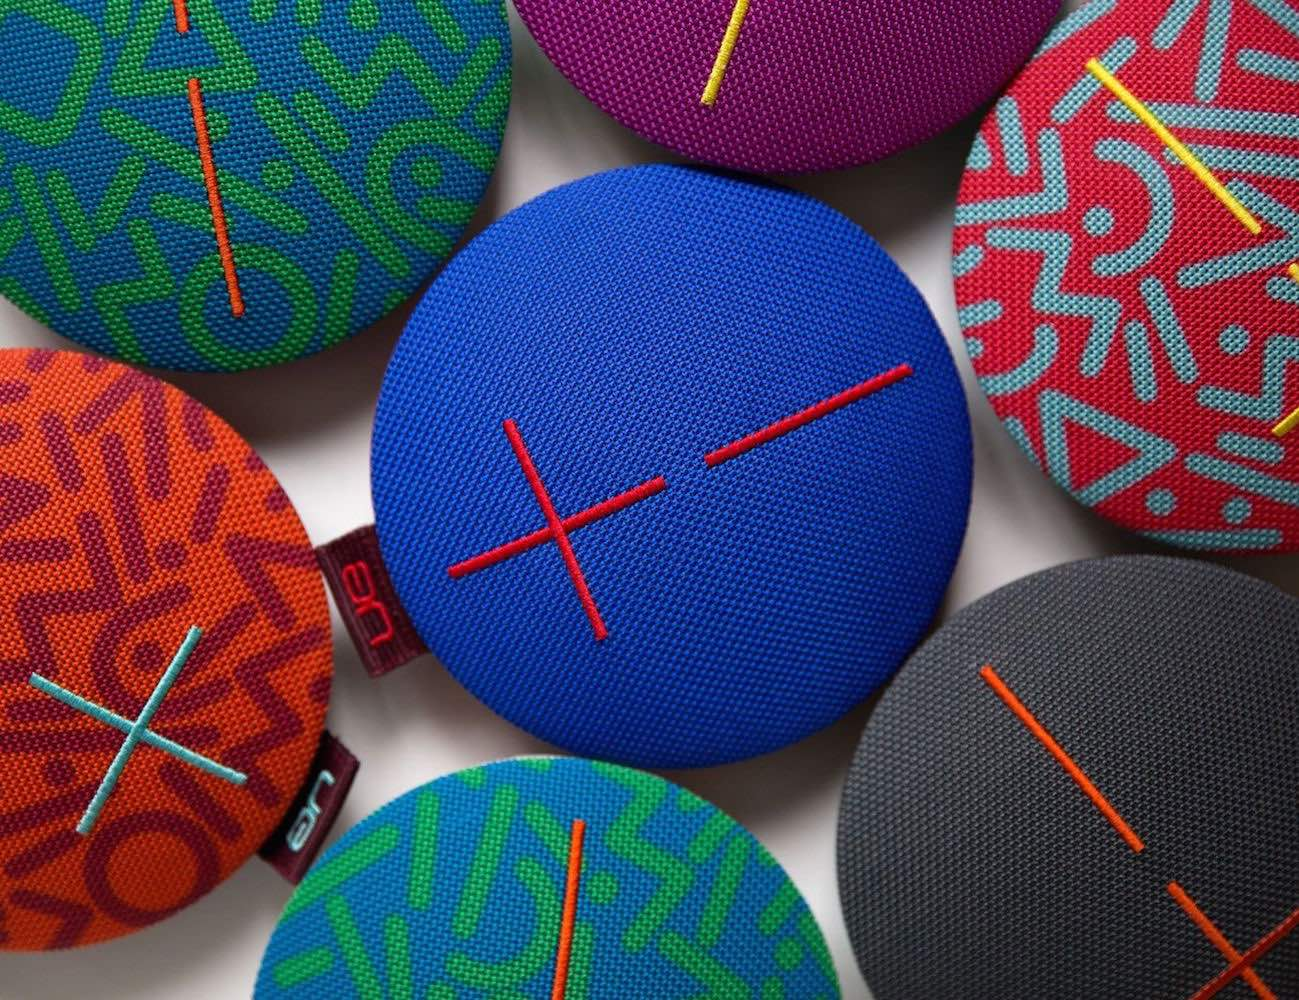 UE ROLL Portable Bluetooth Speaker